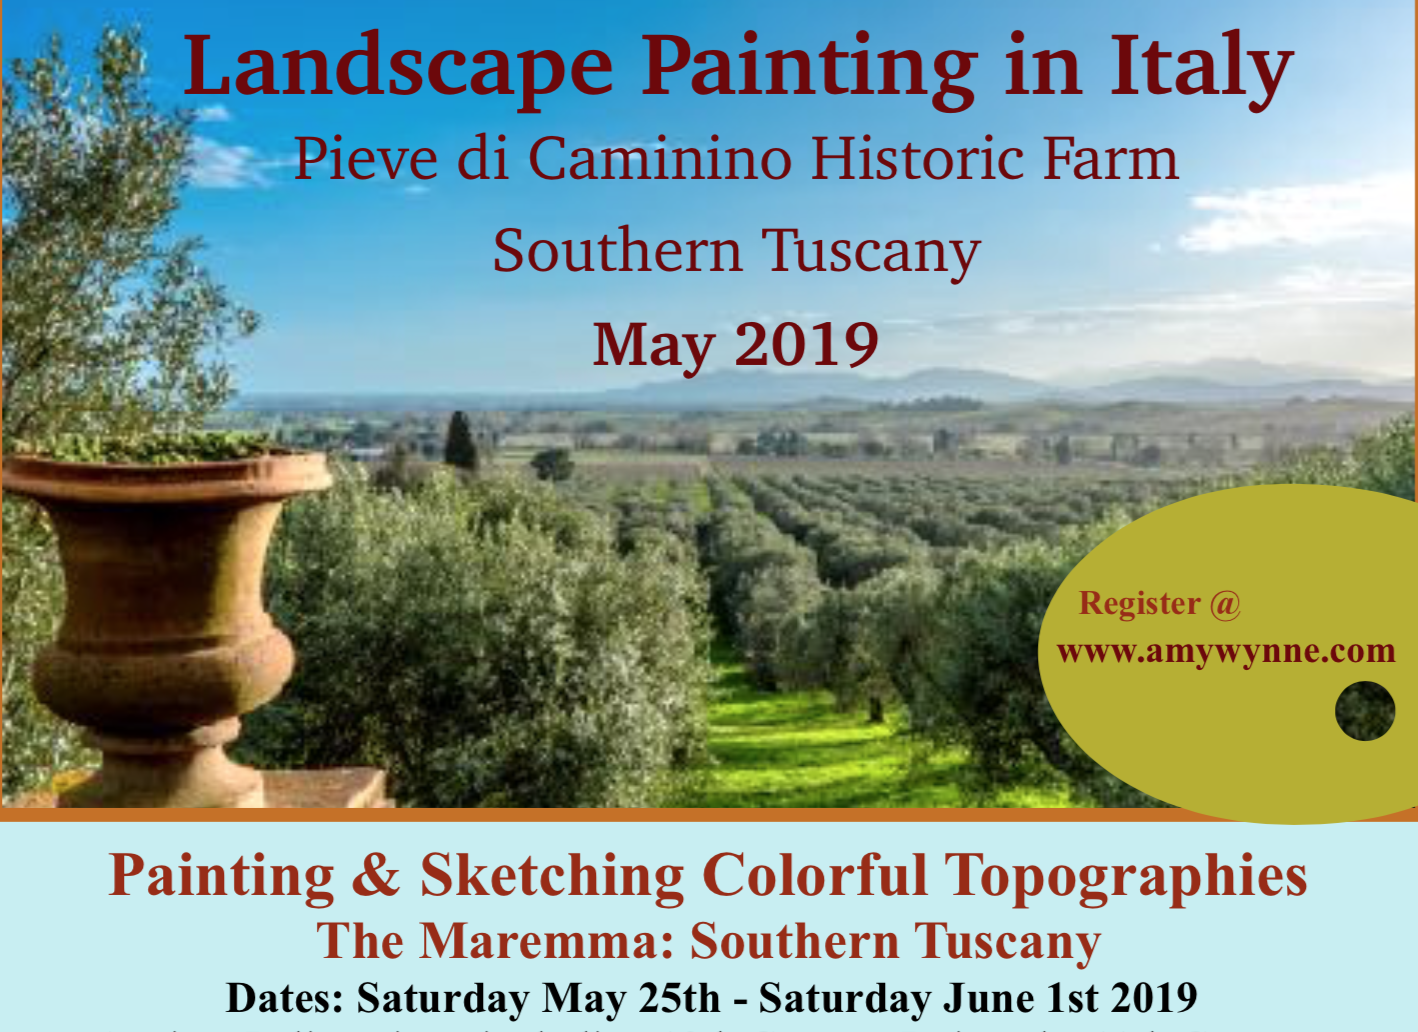 Contact me for more information about painting in this incredible part of Tuscany this Spring! amyelizabethwynne11@gmail.com All levels of experience are welcome in any media!